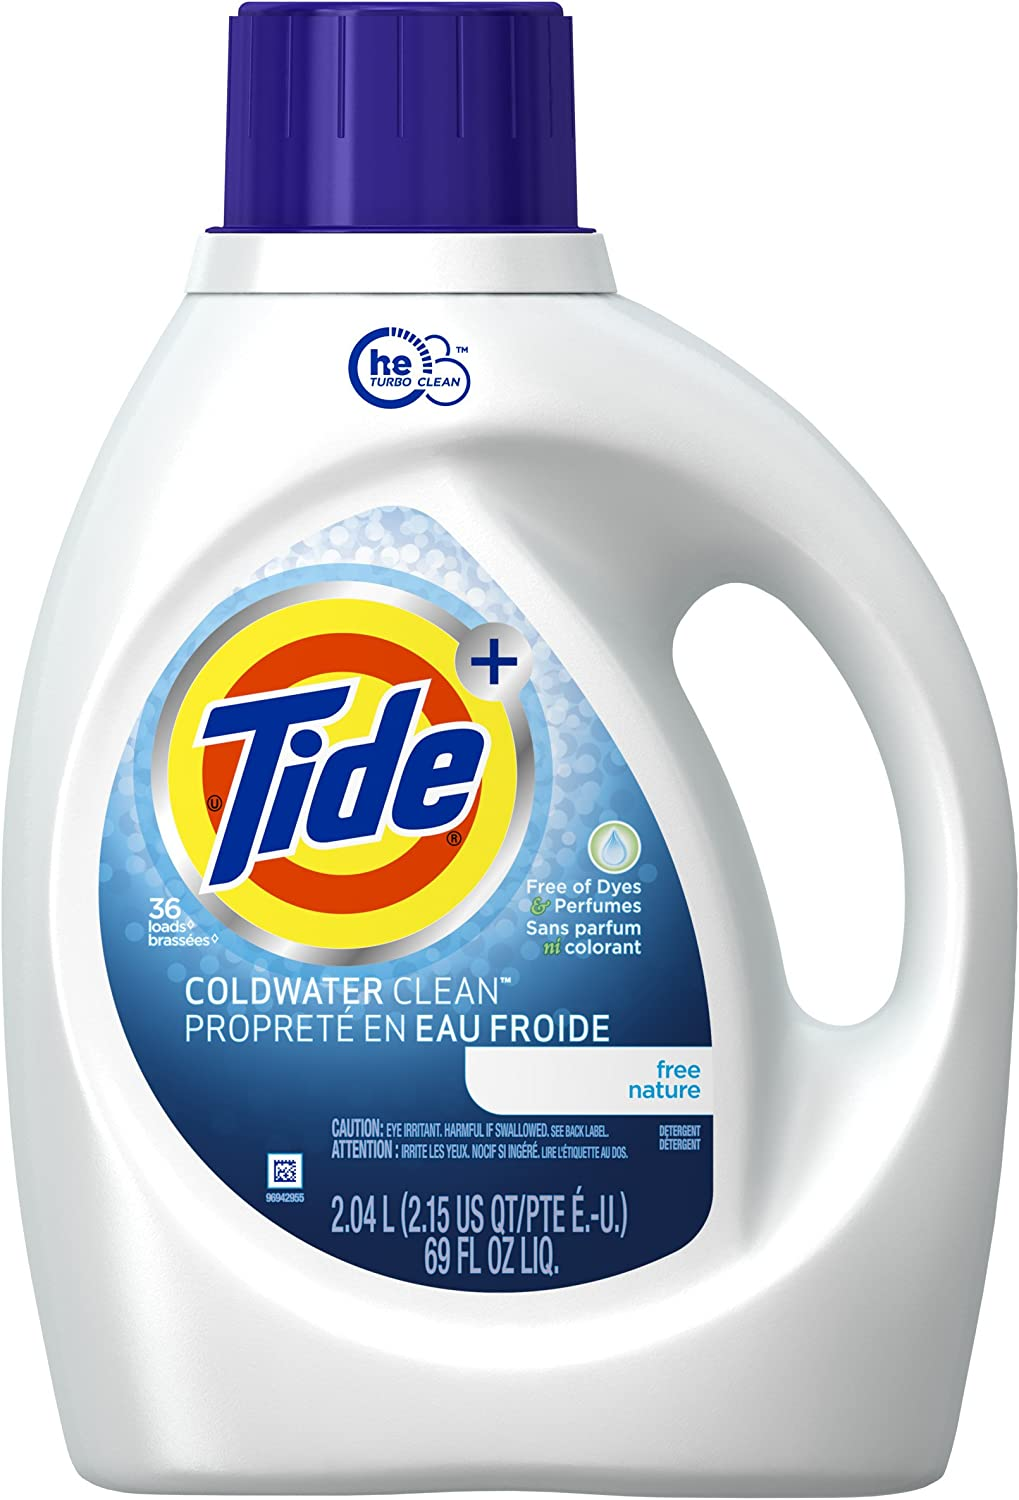 Tide Coldwater Clean Free High Efficiency Liquid Laundry Detergent 2 04 L 36 Loads Amazon Ca Health Personal Care